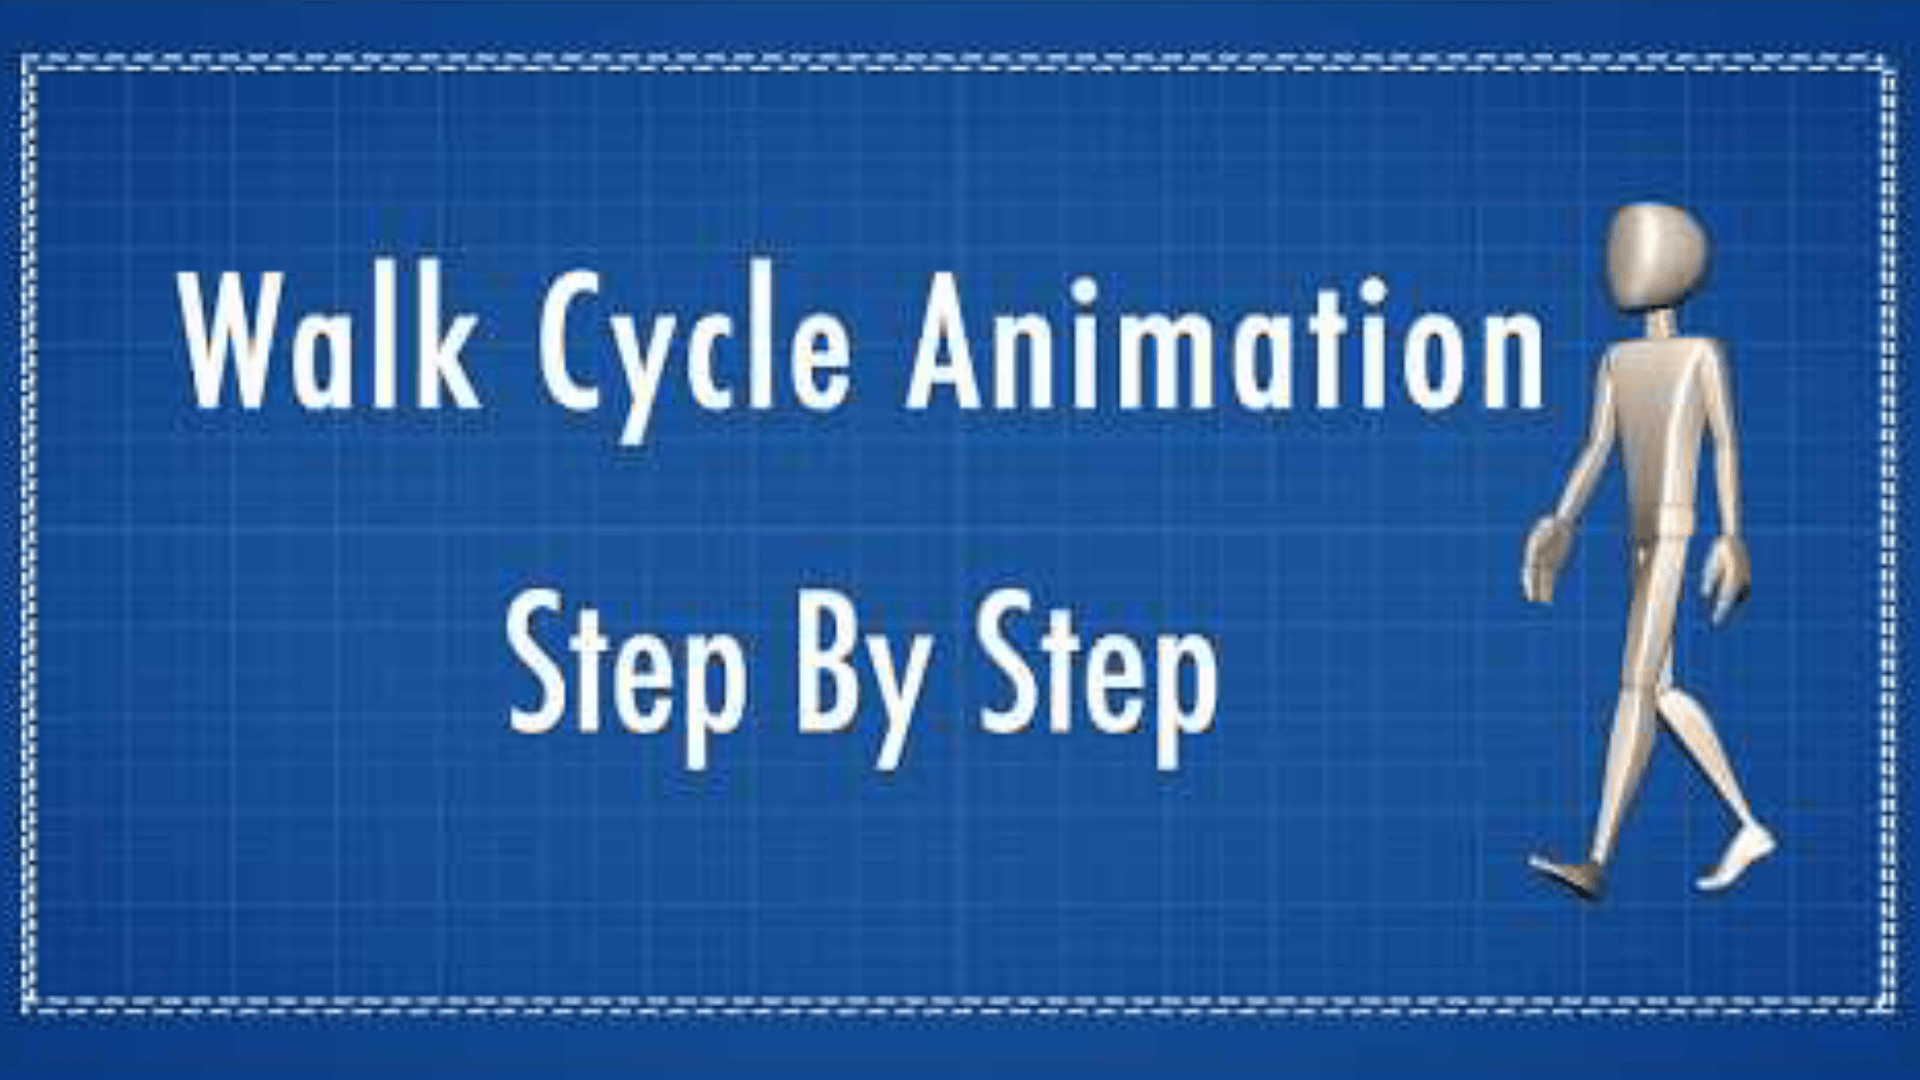 Maya 3d animation - Learn how to animate a walk cycle step by step - Maya Tutorials